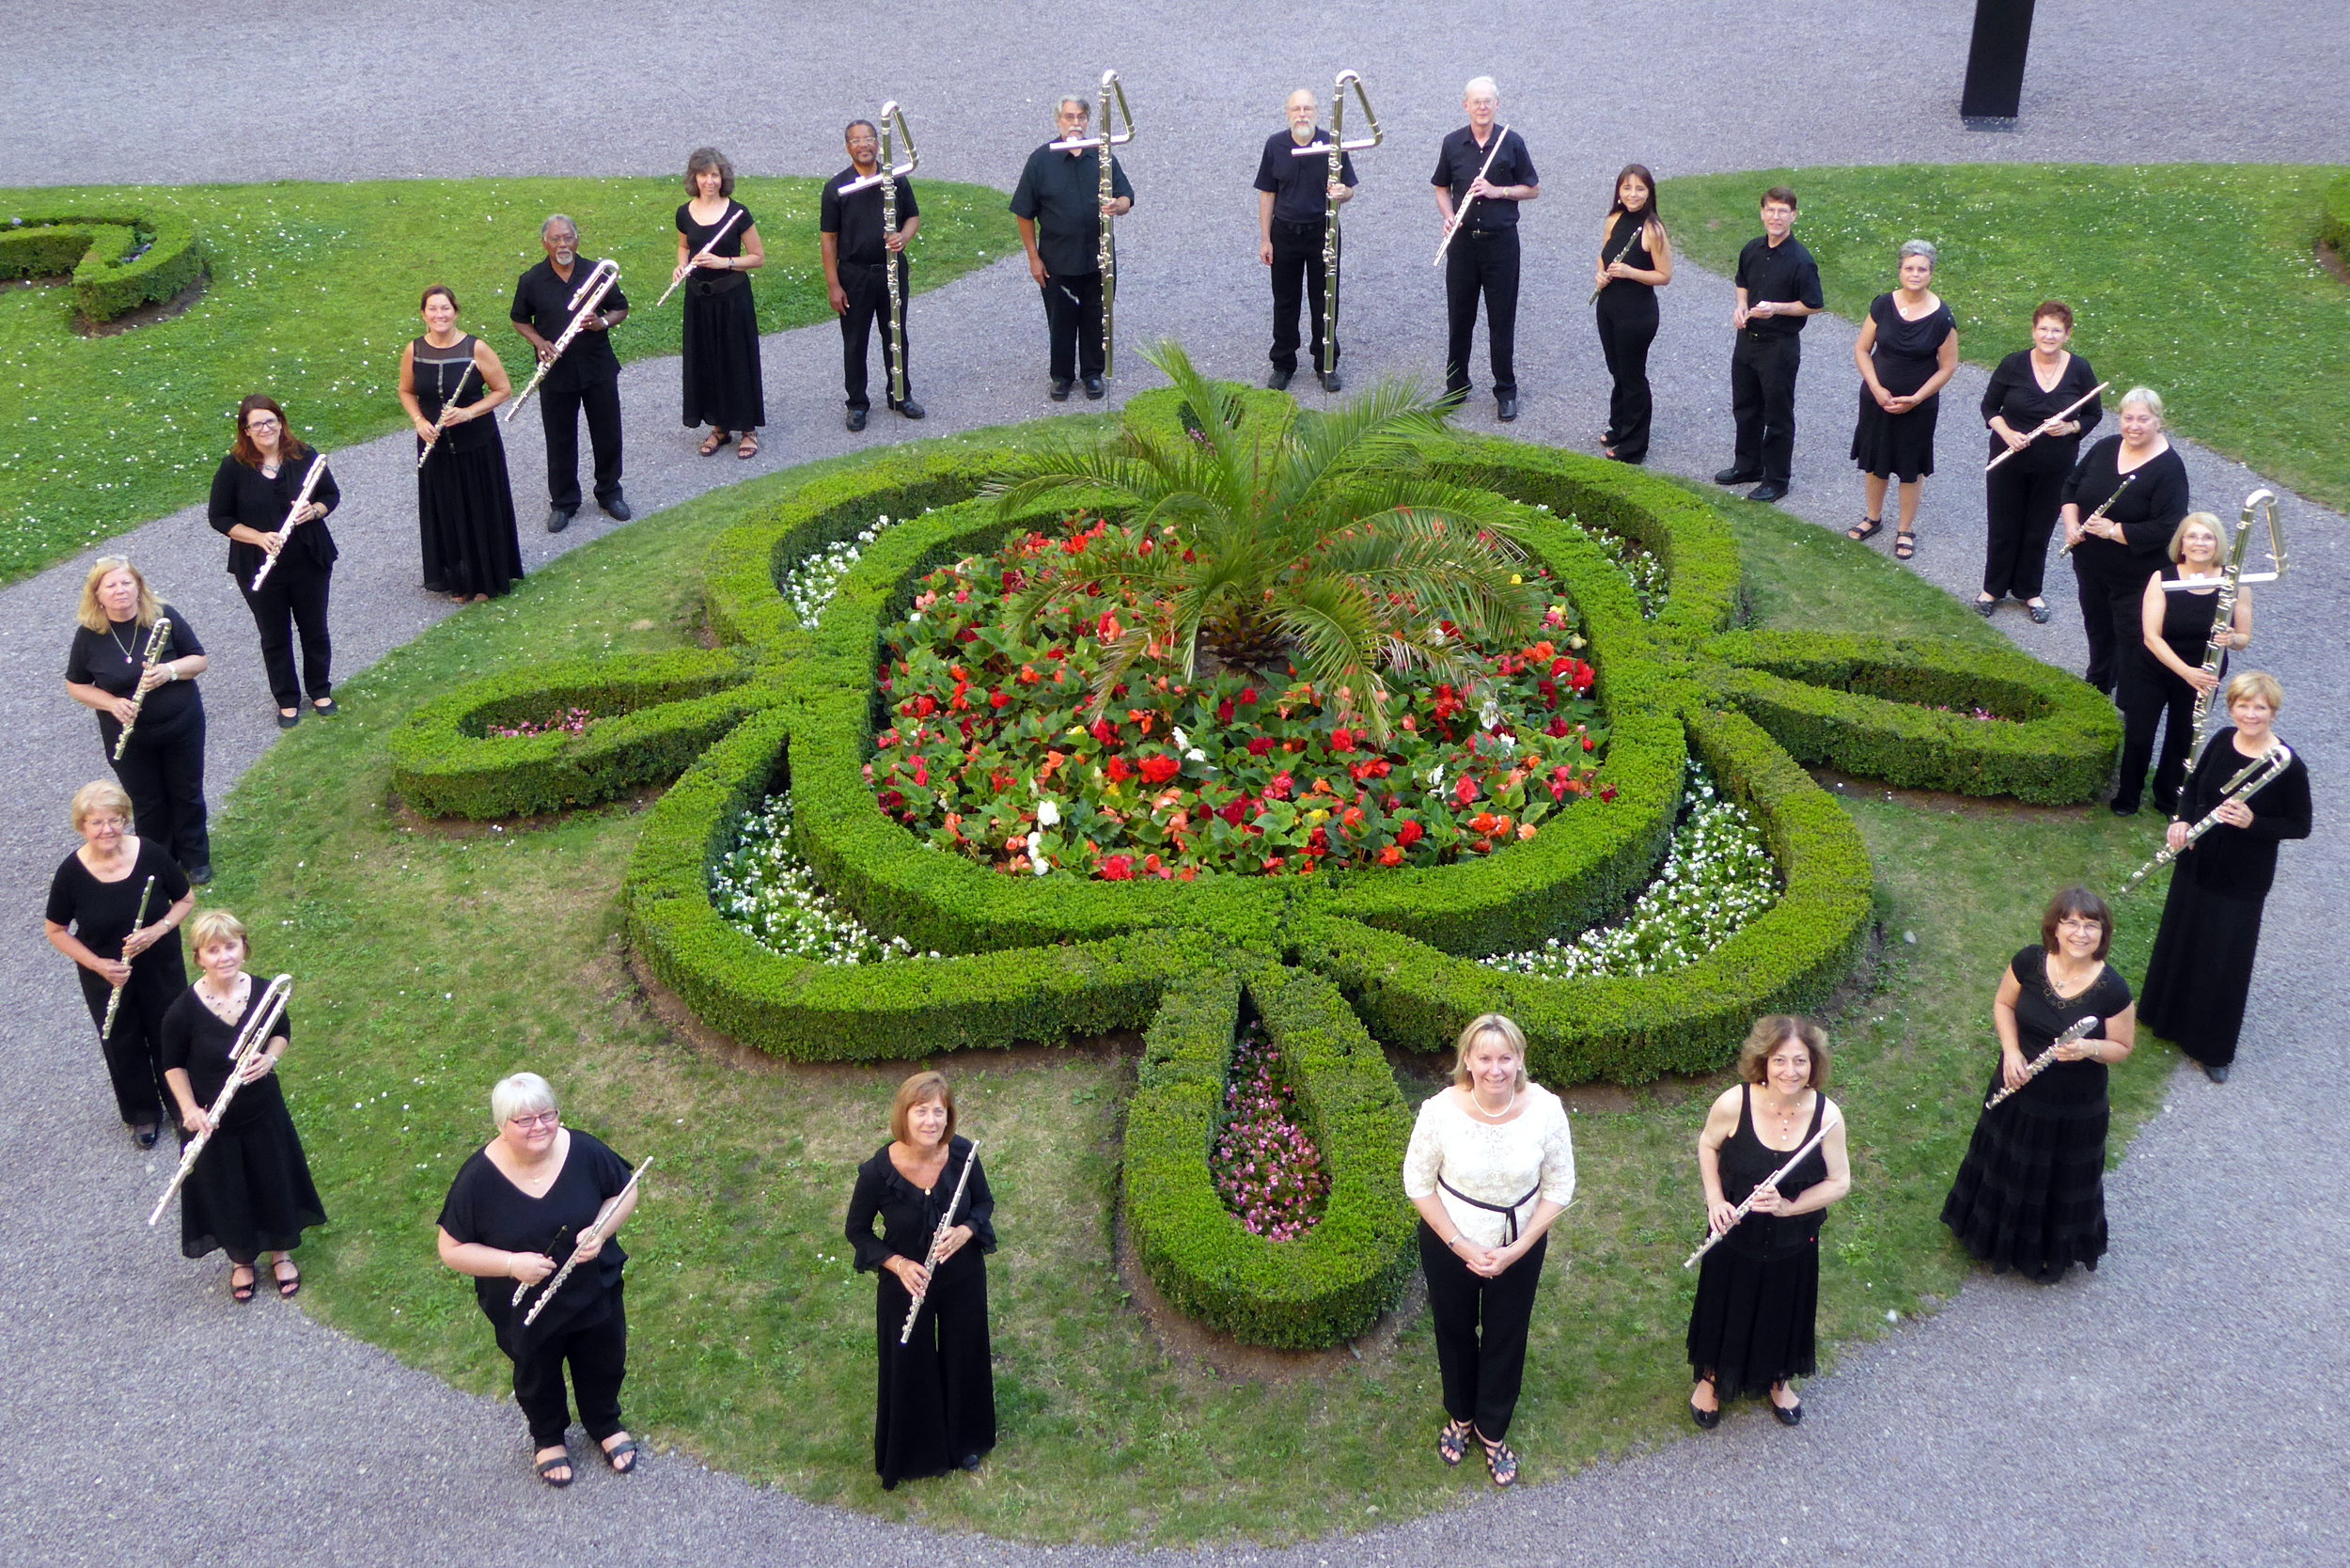 Metropolitan Flute Orchestra in one of the gardens of the Palace of the Archbishop's in Kromeriz, Czech Republic